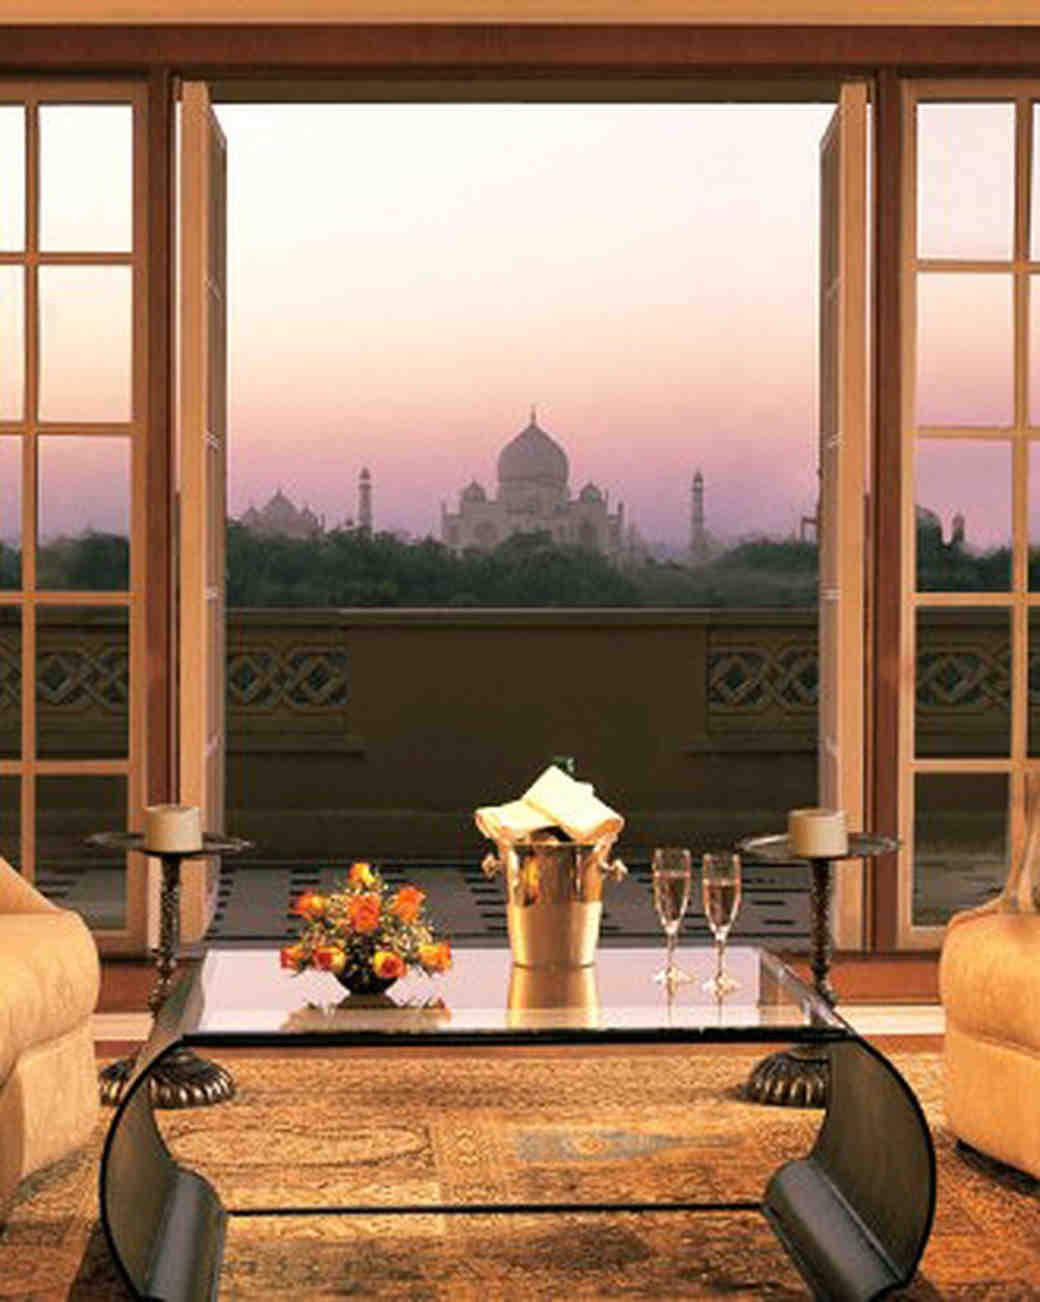 resort taj mahal view